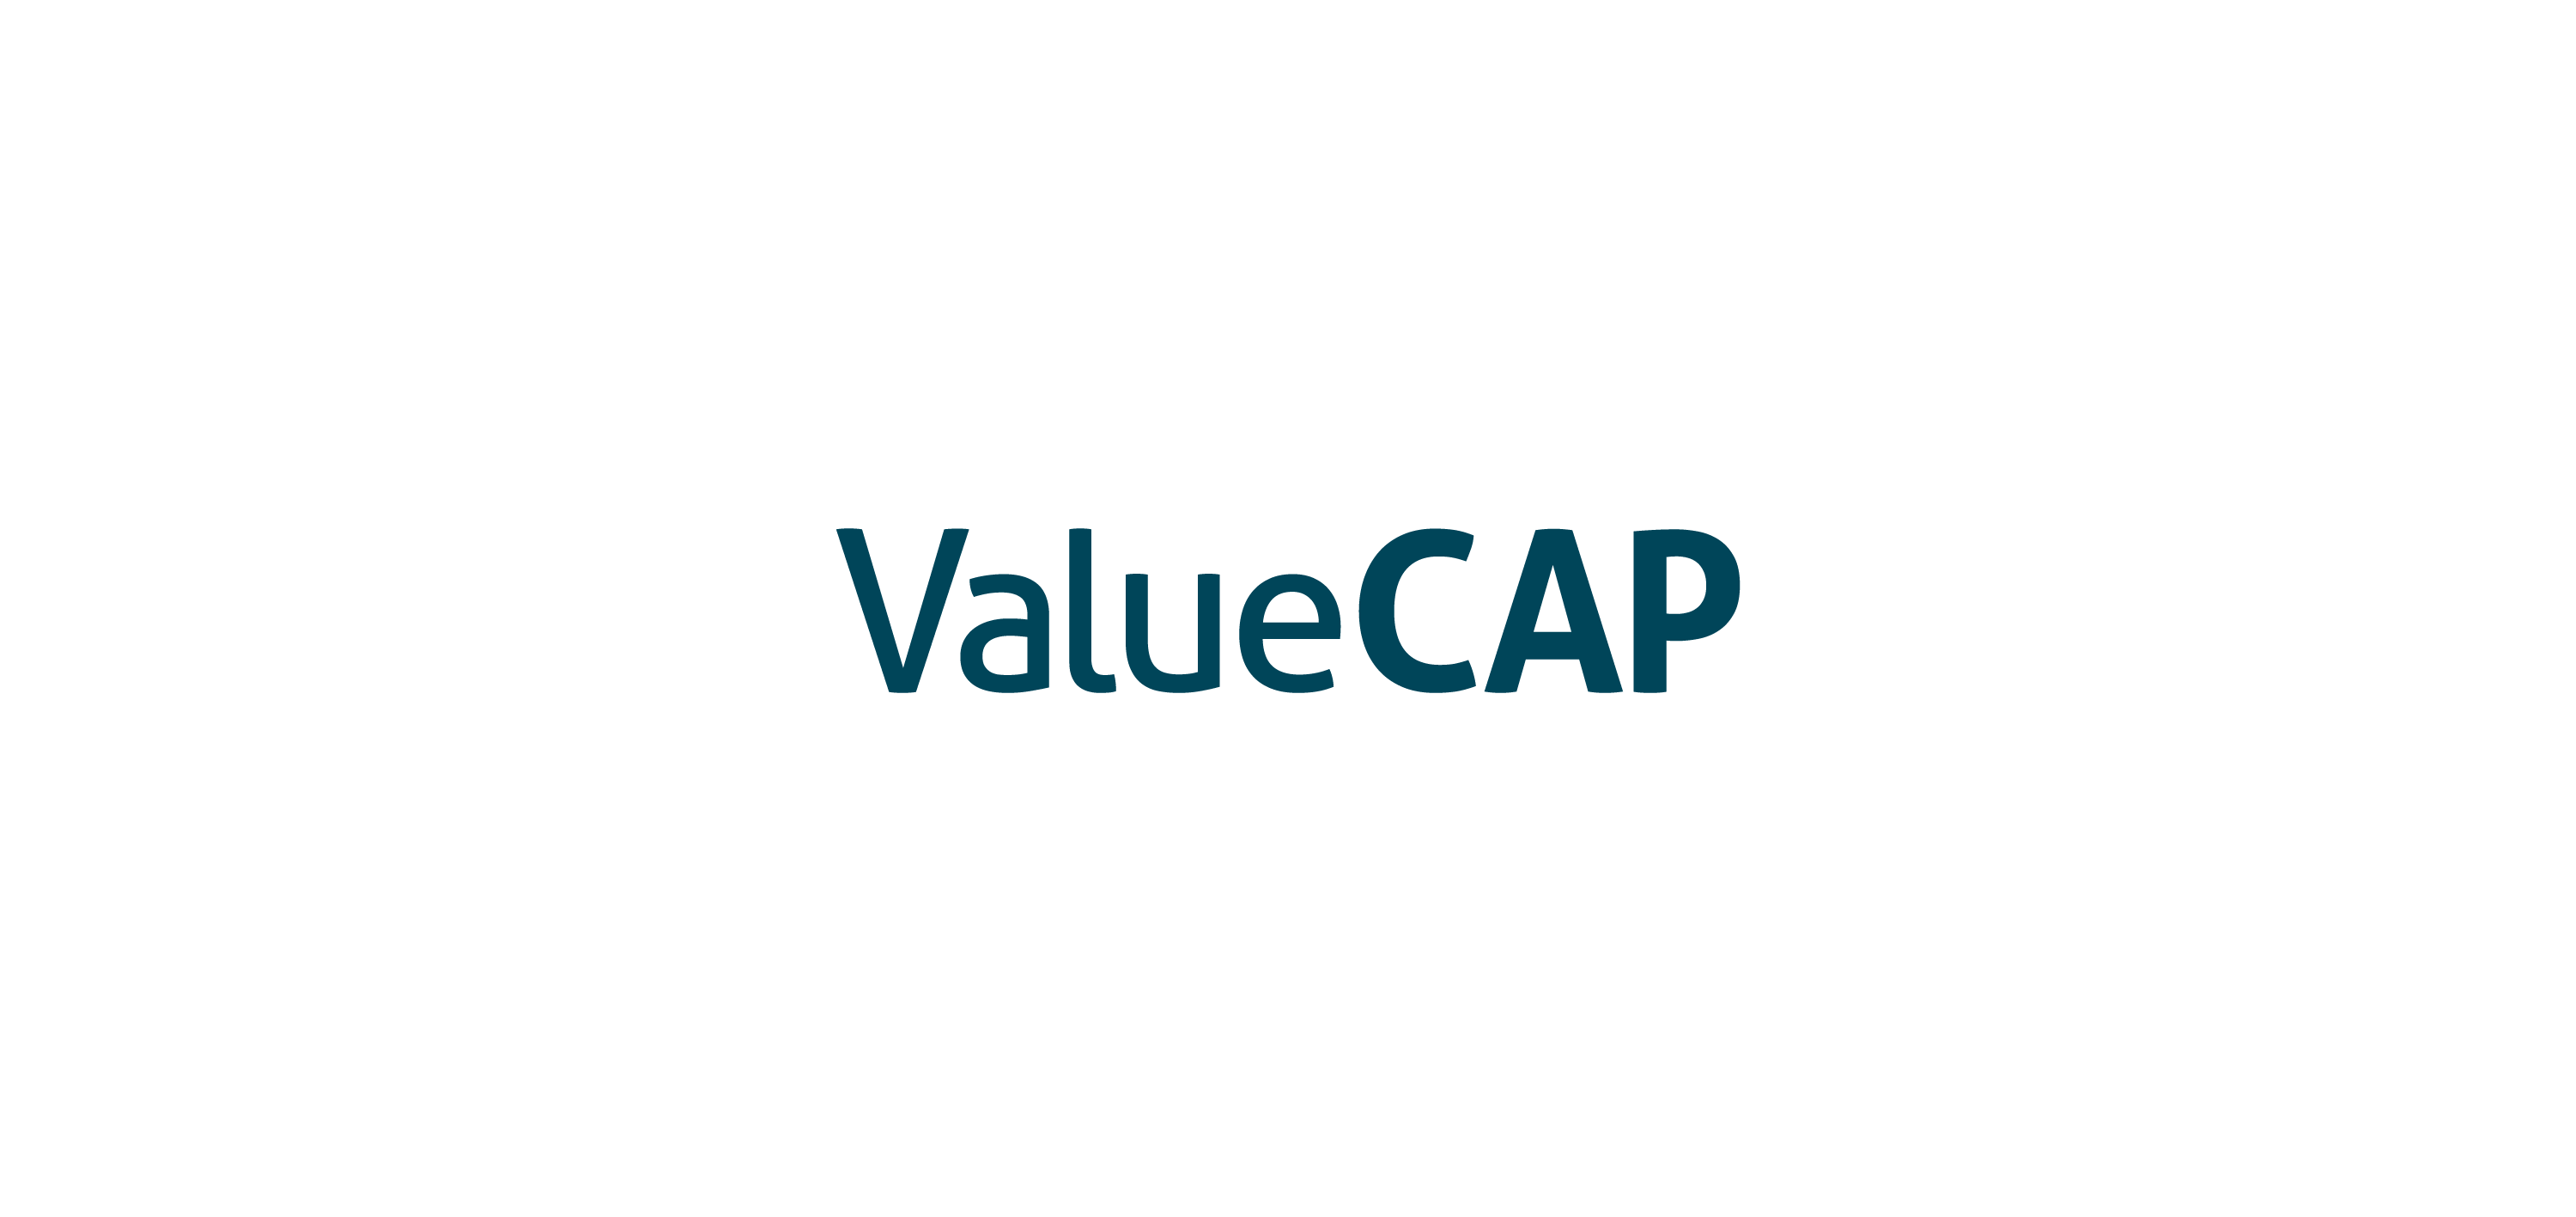 value cap logo vector